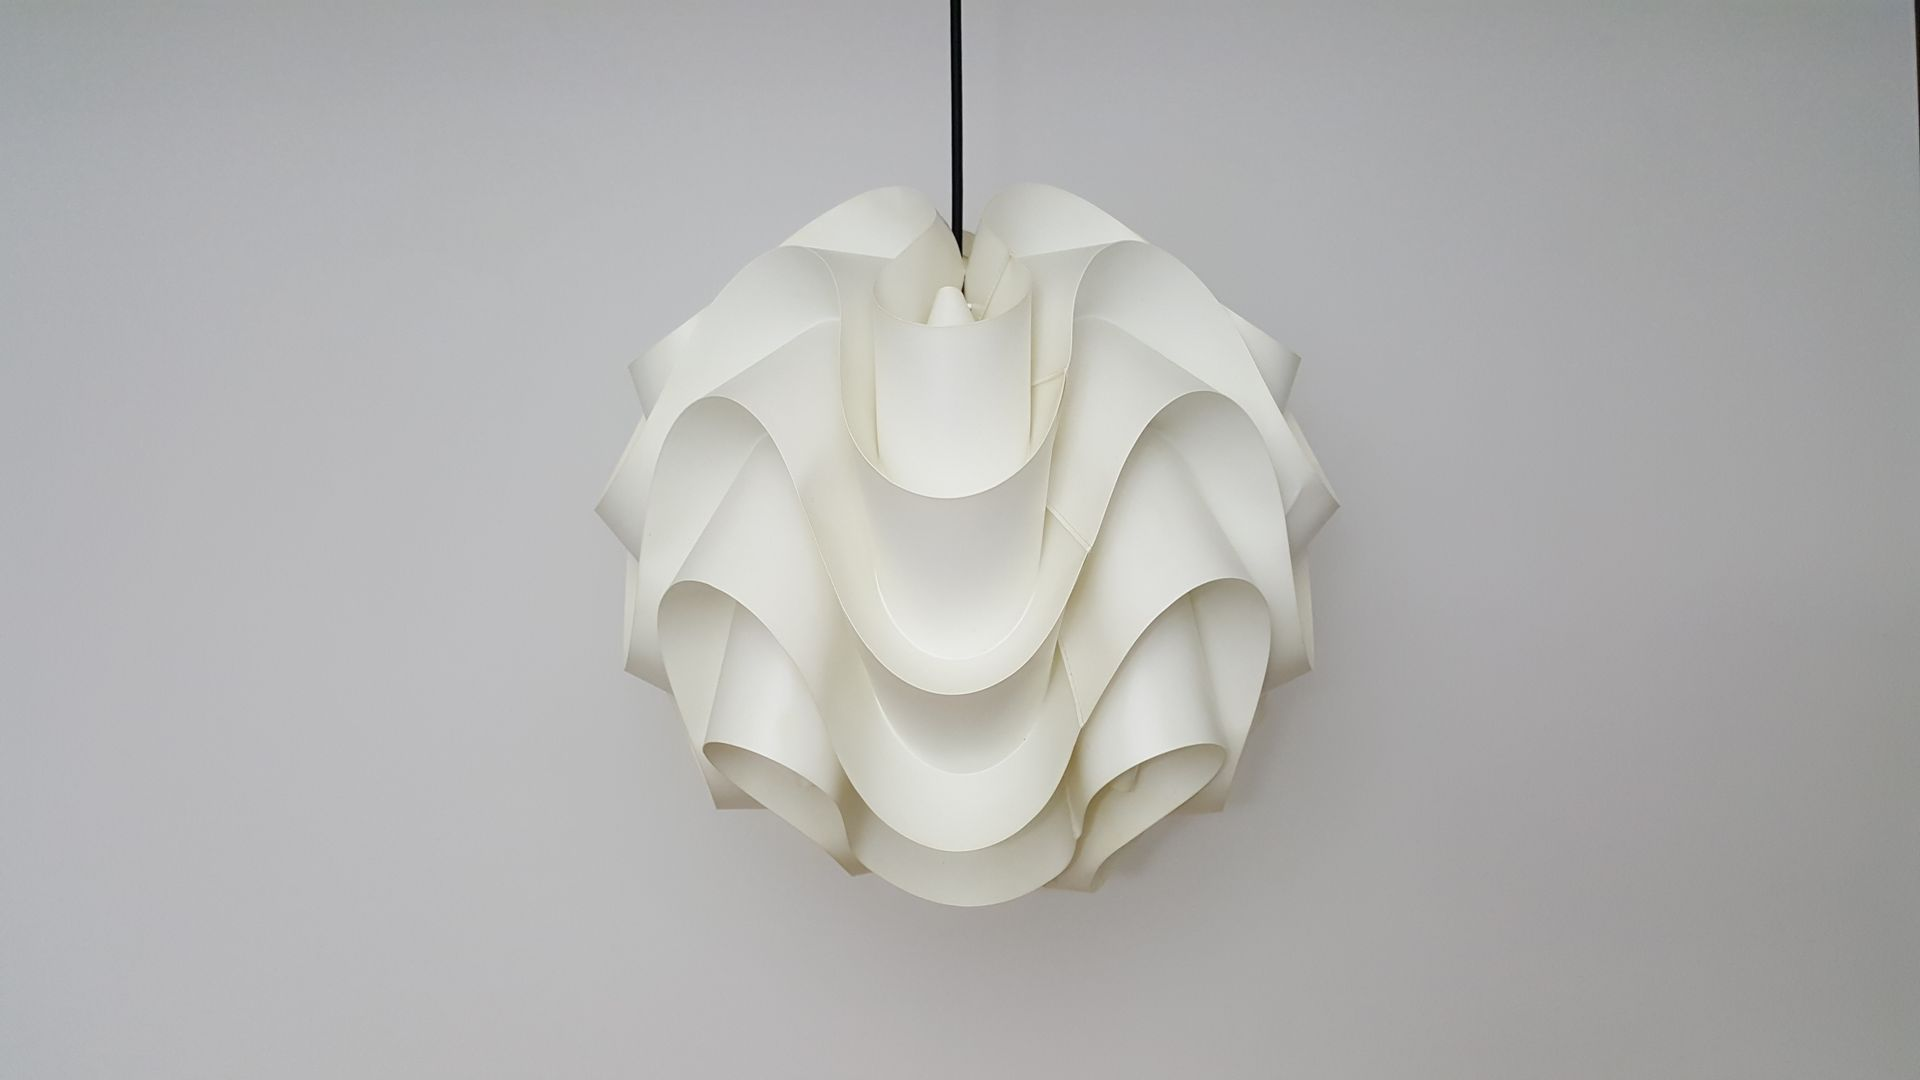 Le Klint Pendant Replica Vintage Model 172 Pendant By Poul Christiansen For Le